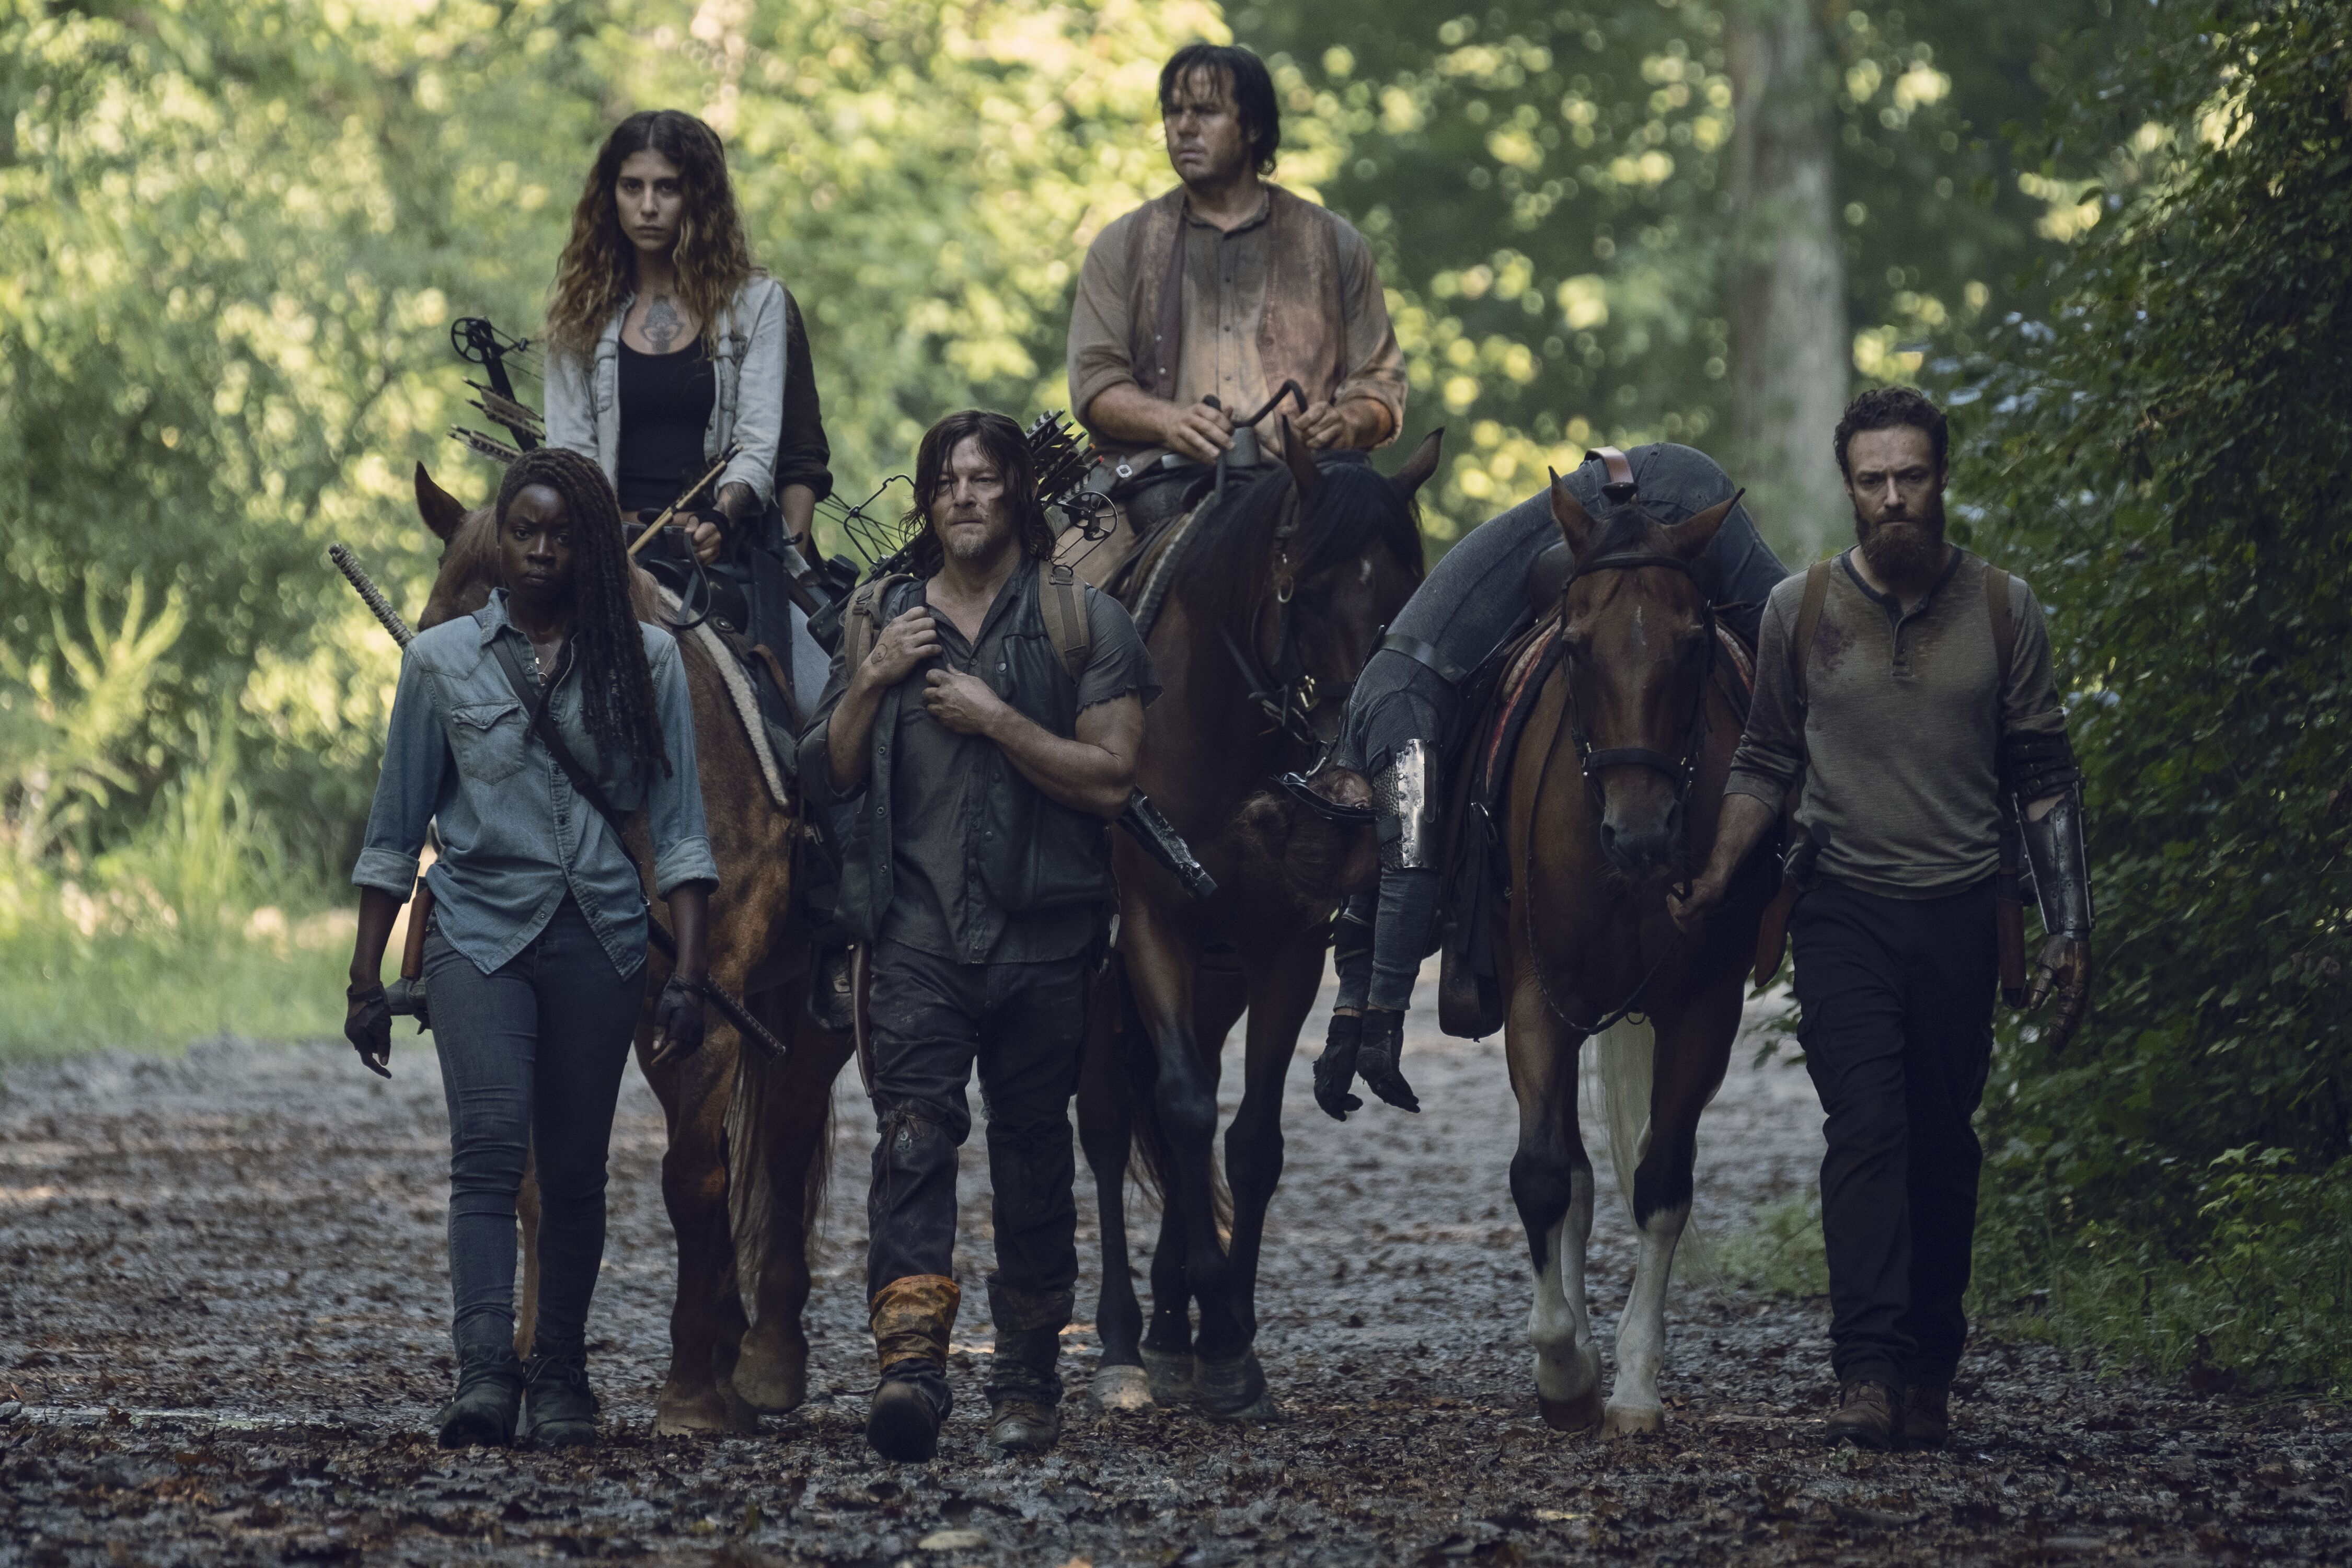 The Walking Dead fans: Watch new episodes at Nic and Norman's in Senoia